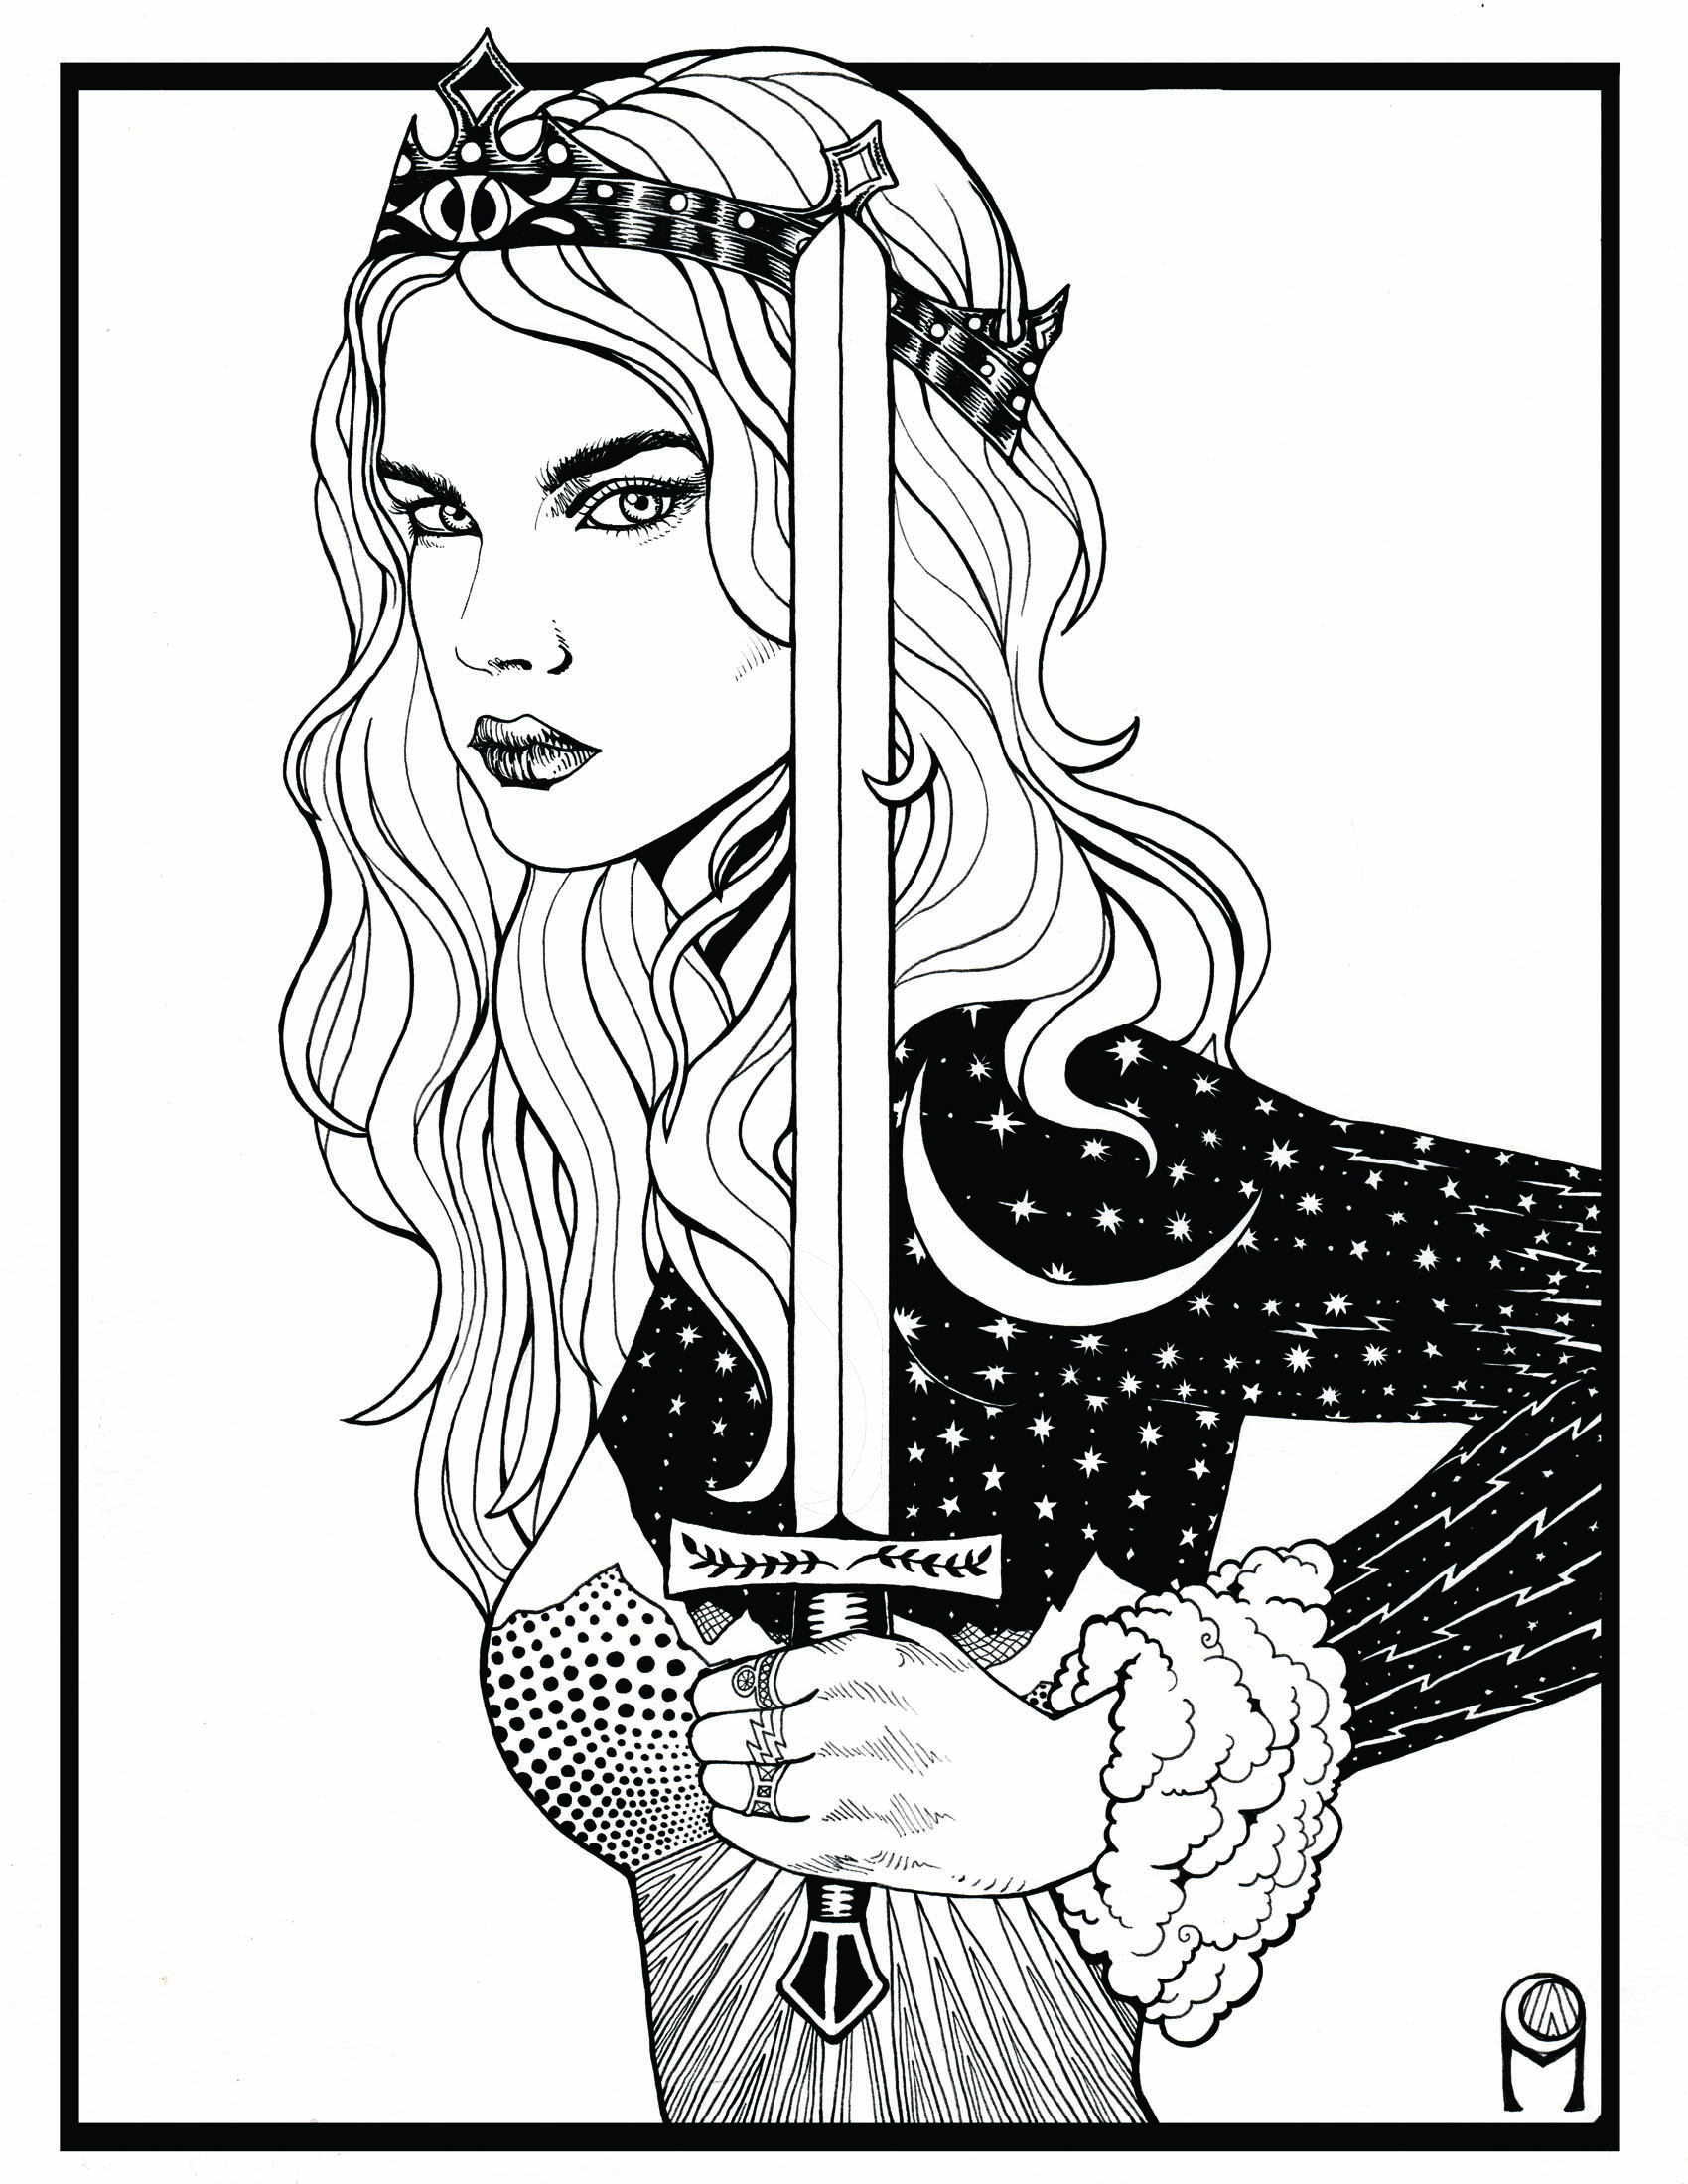 The Tarot deck, coming soon....